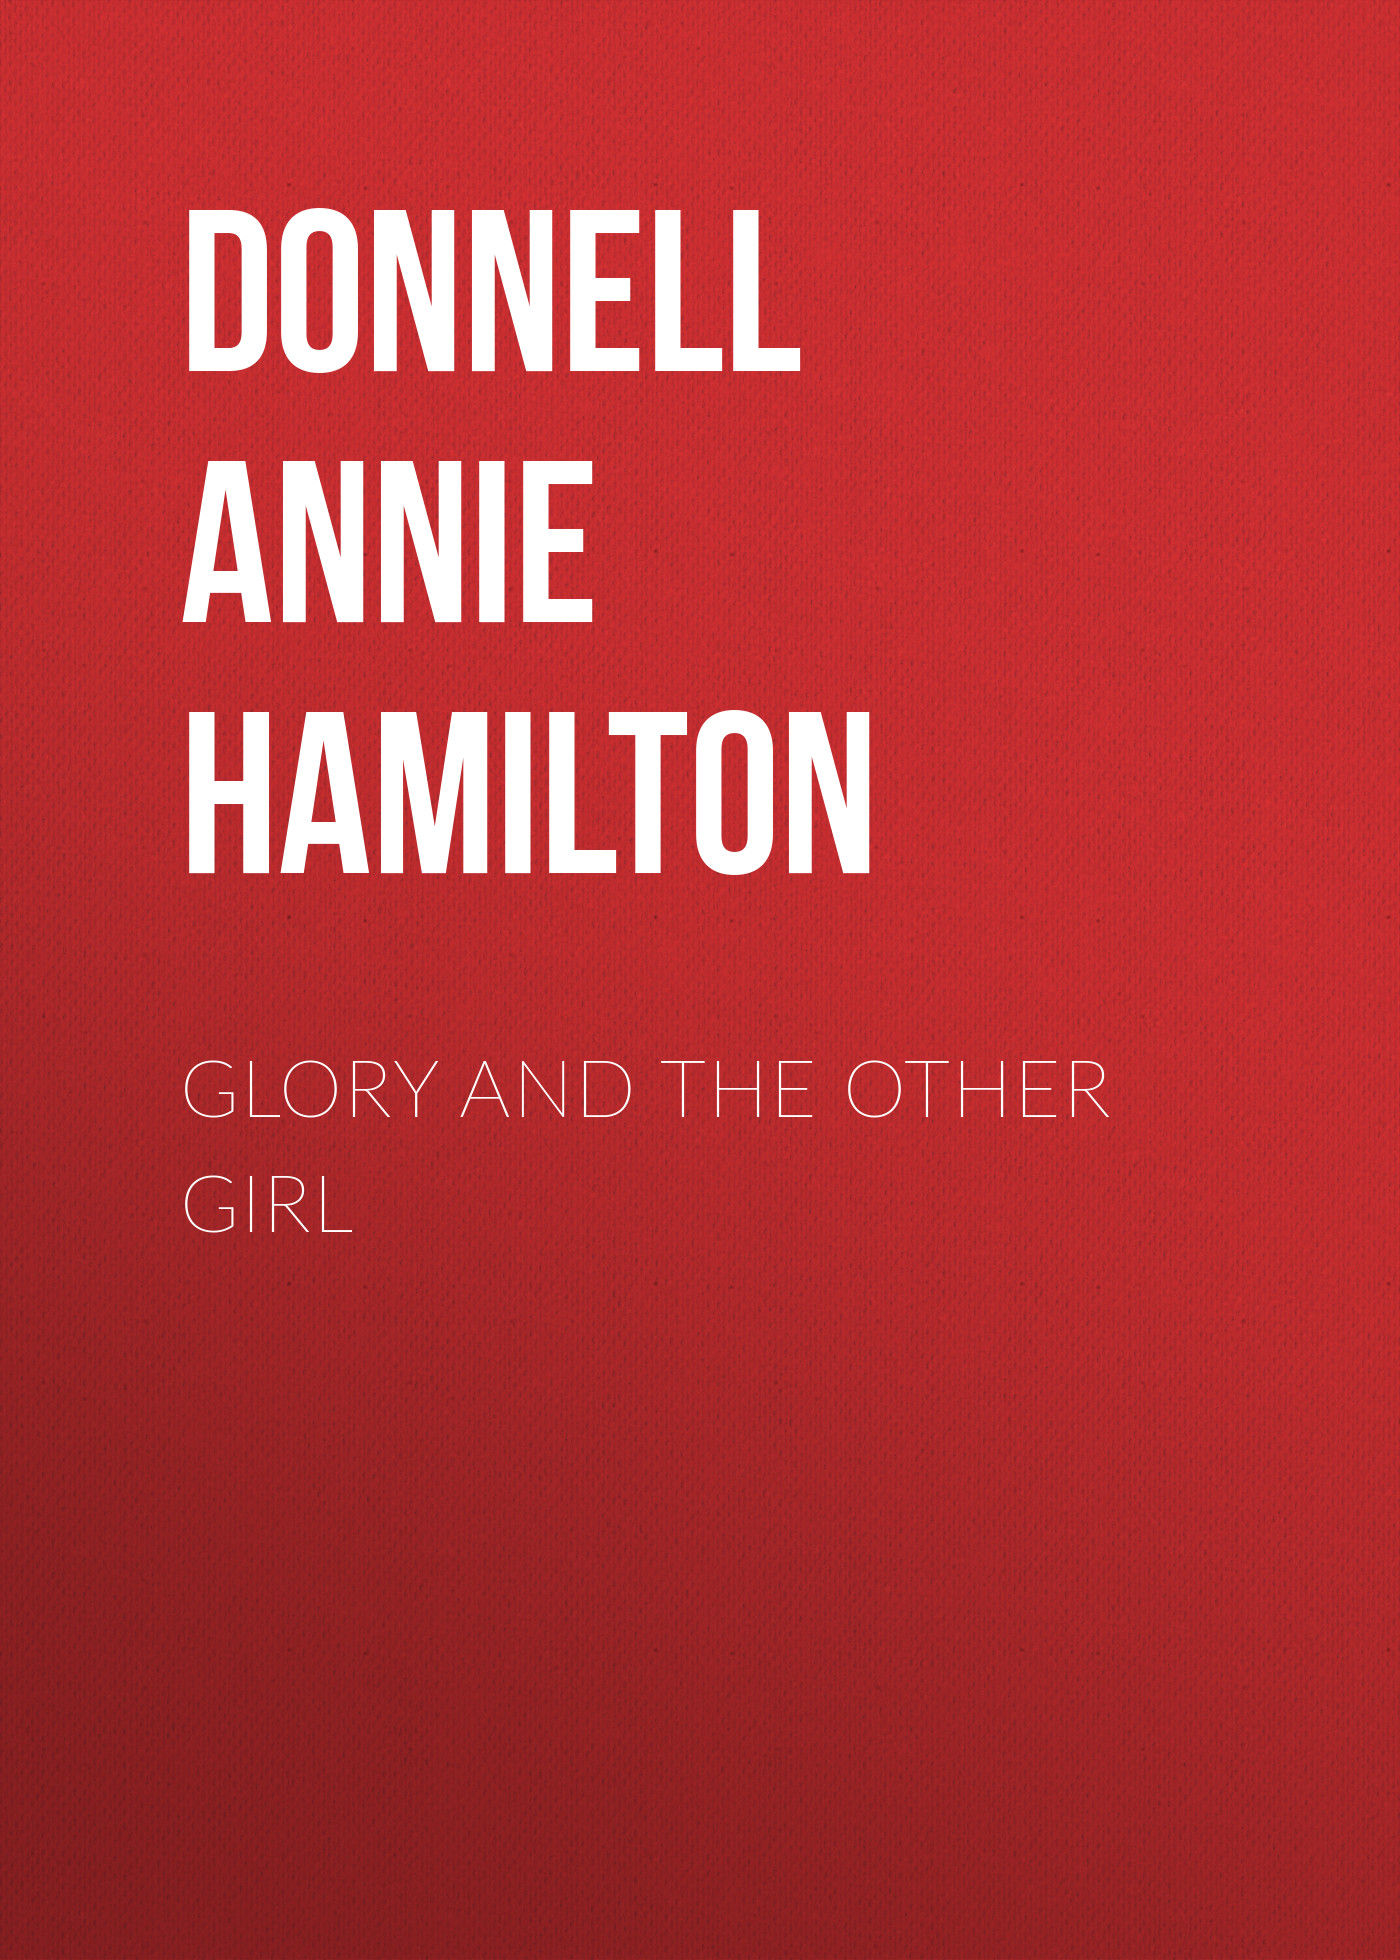 все цены на Donnell Annie Hamilton Glory and the Other Girl